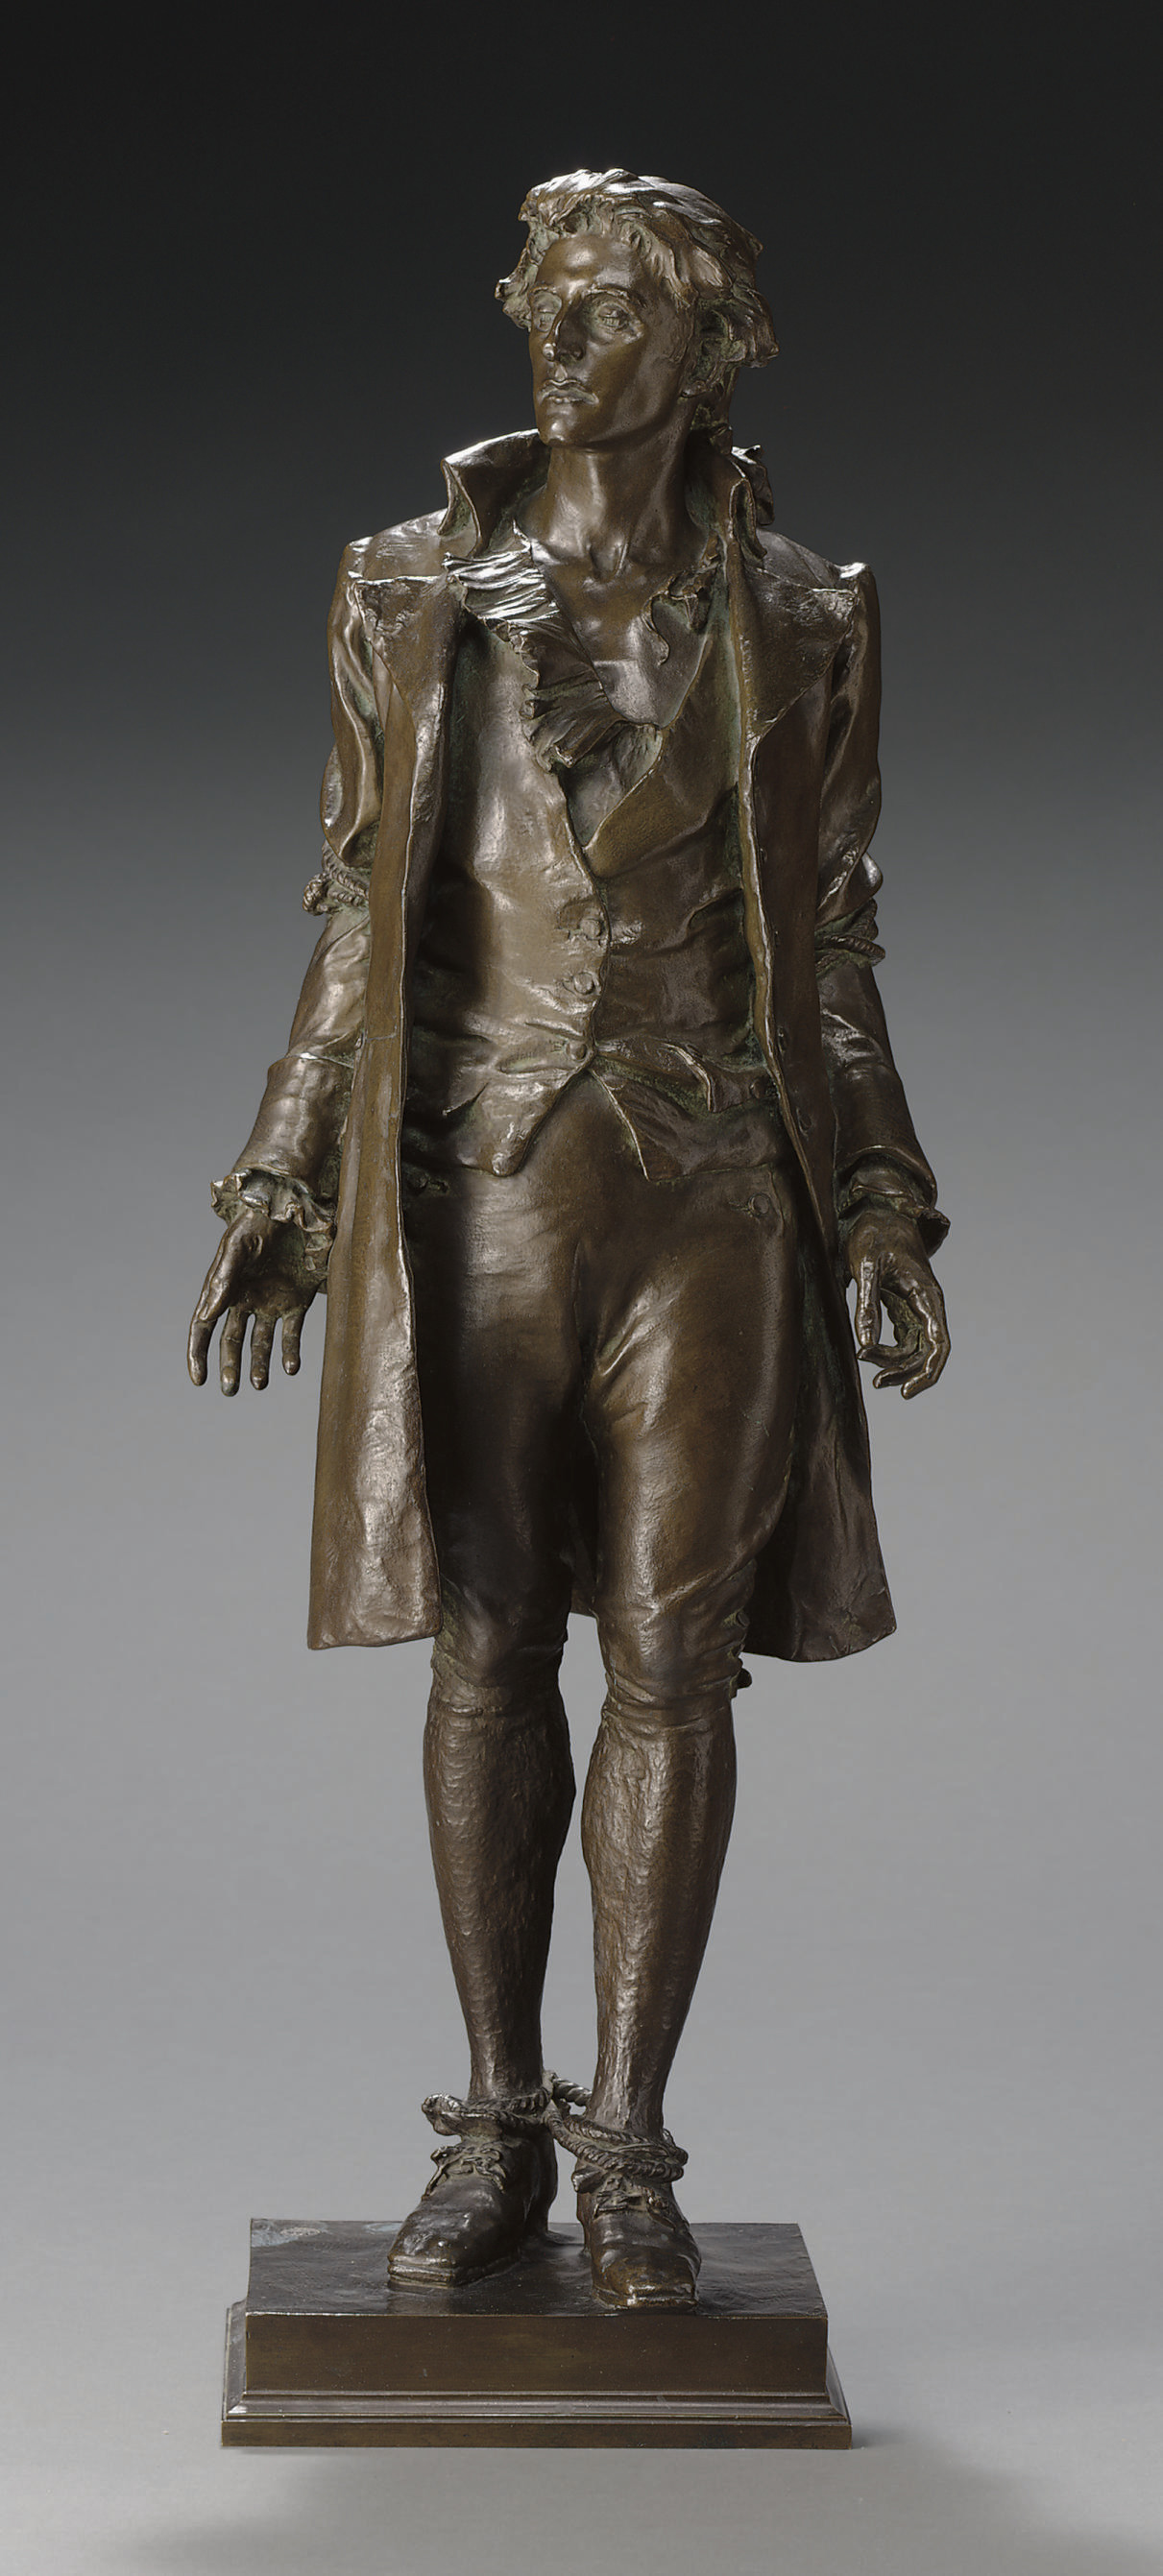 Frederick William MacMonnies (